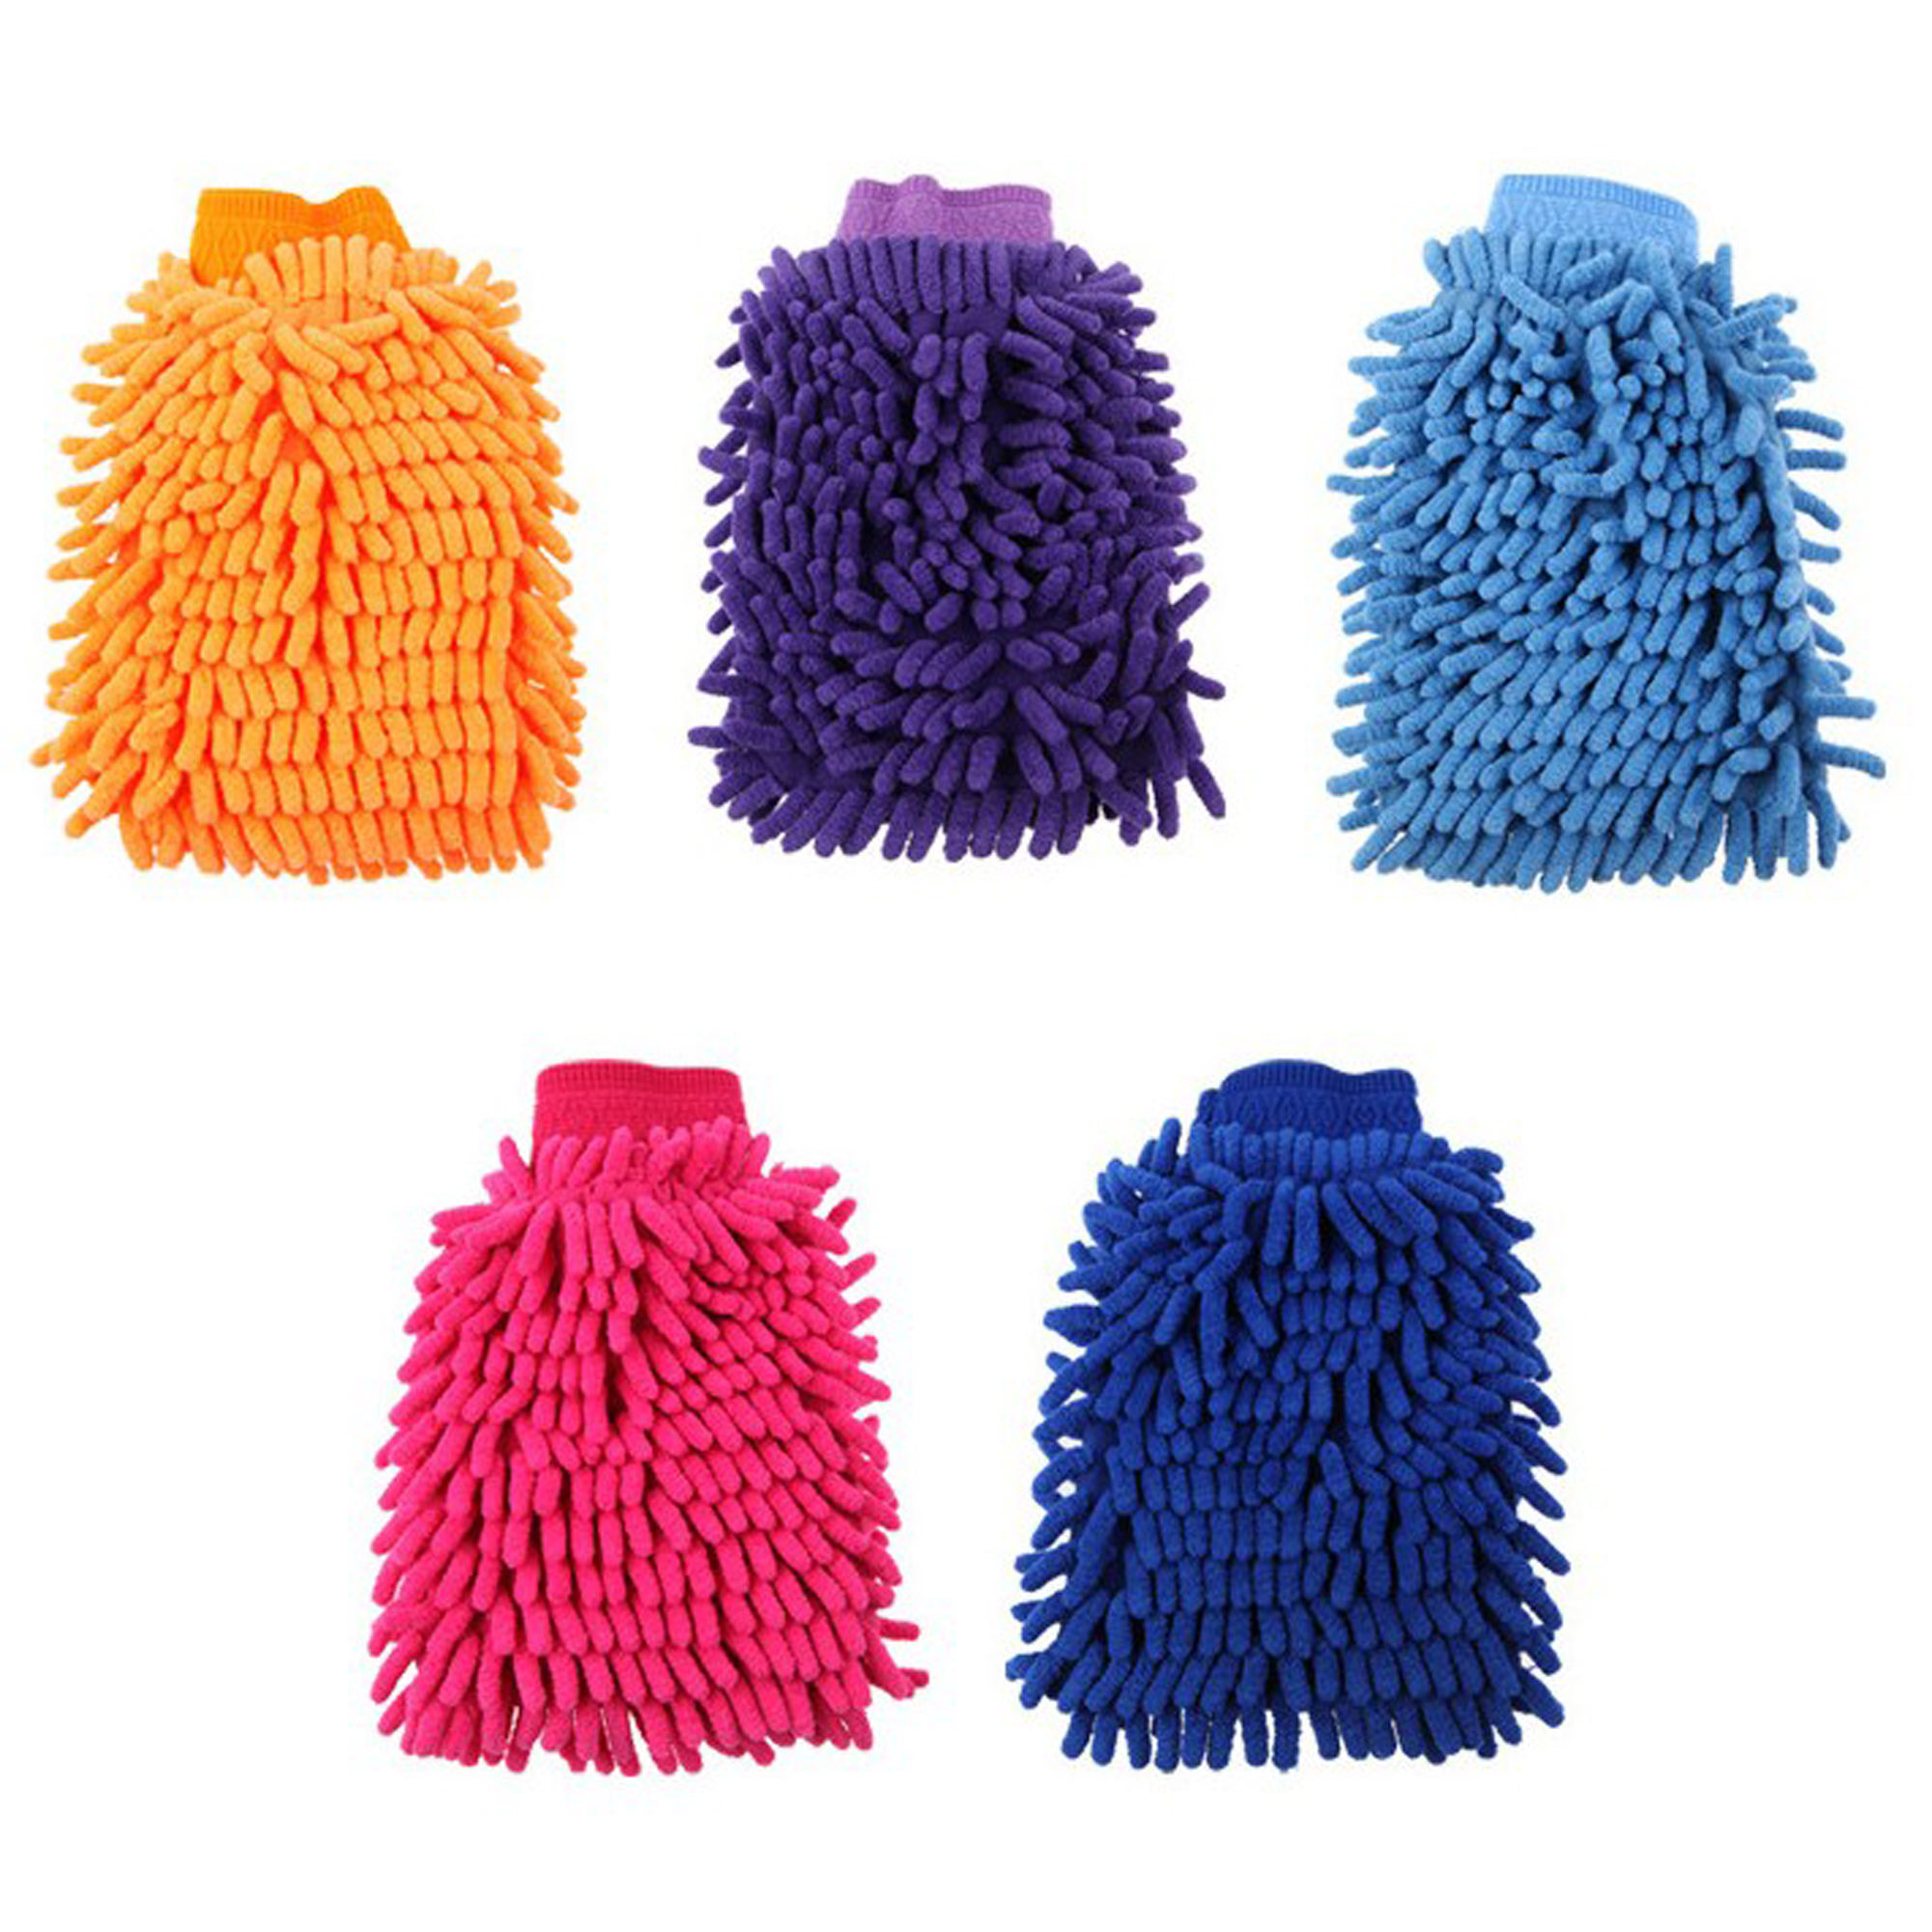 PL- New product promotional microfiber chenille car office home wash towel